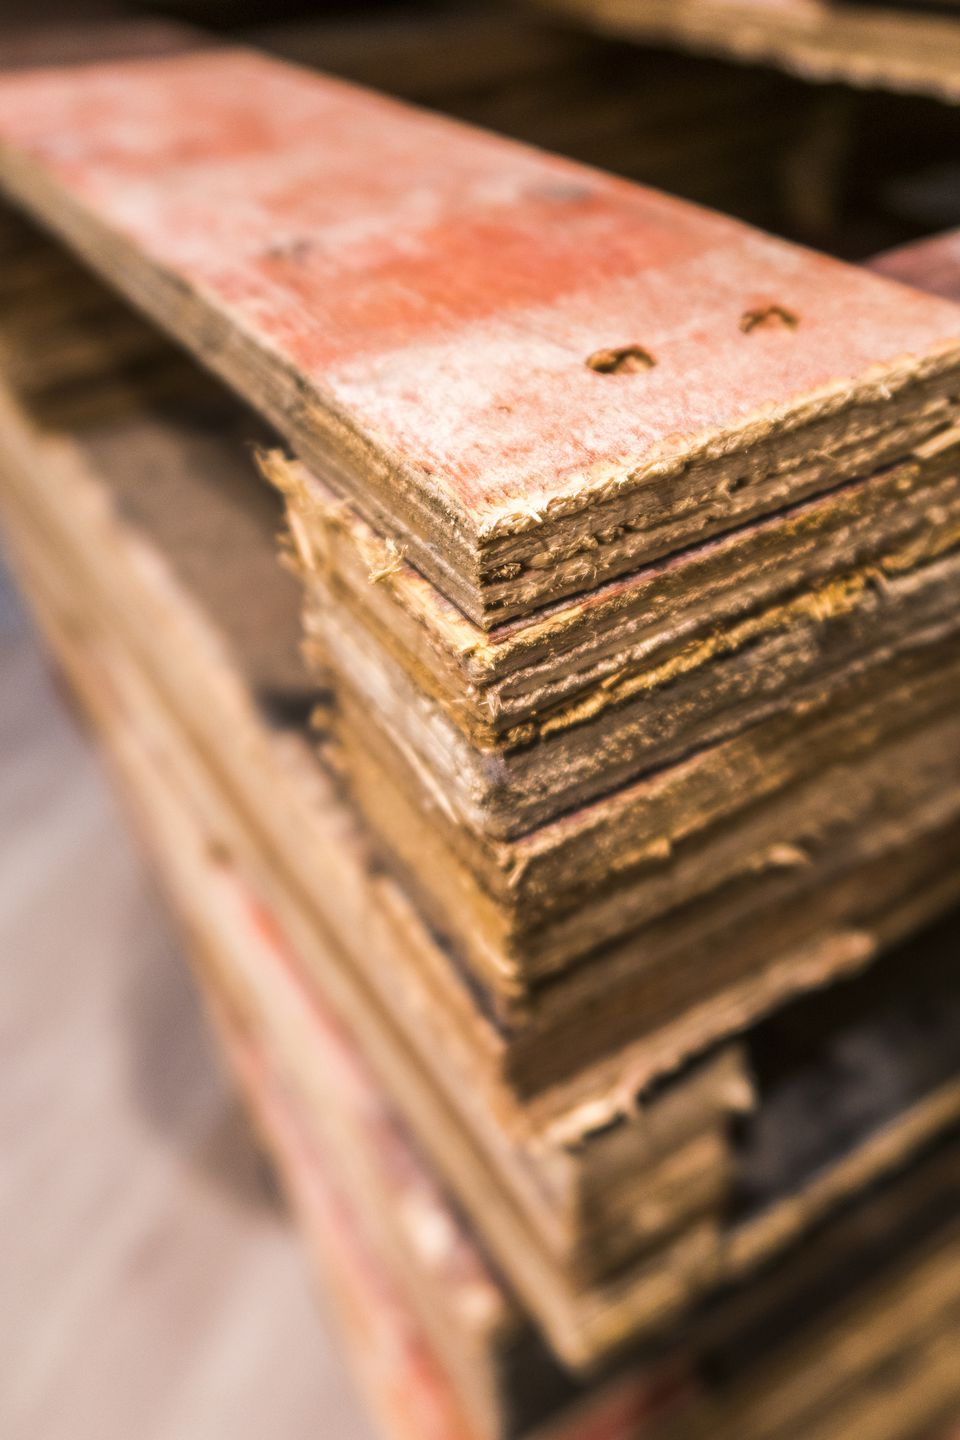 Four Methods For Covering Exposed Plywood Edges